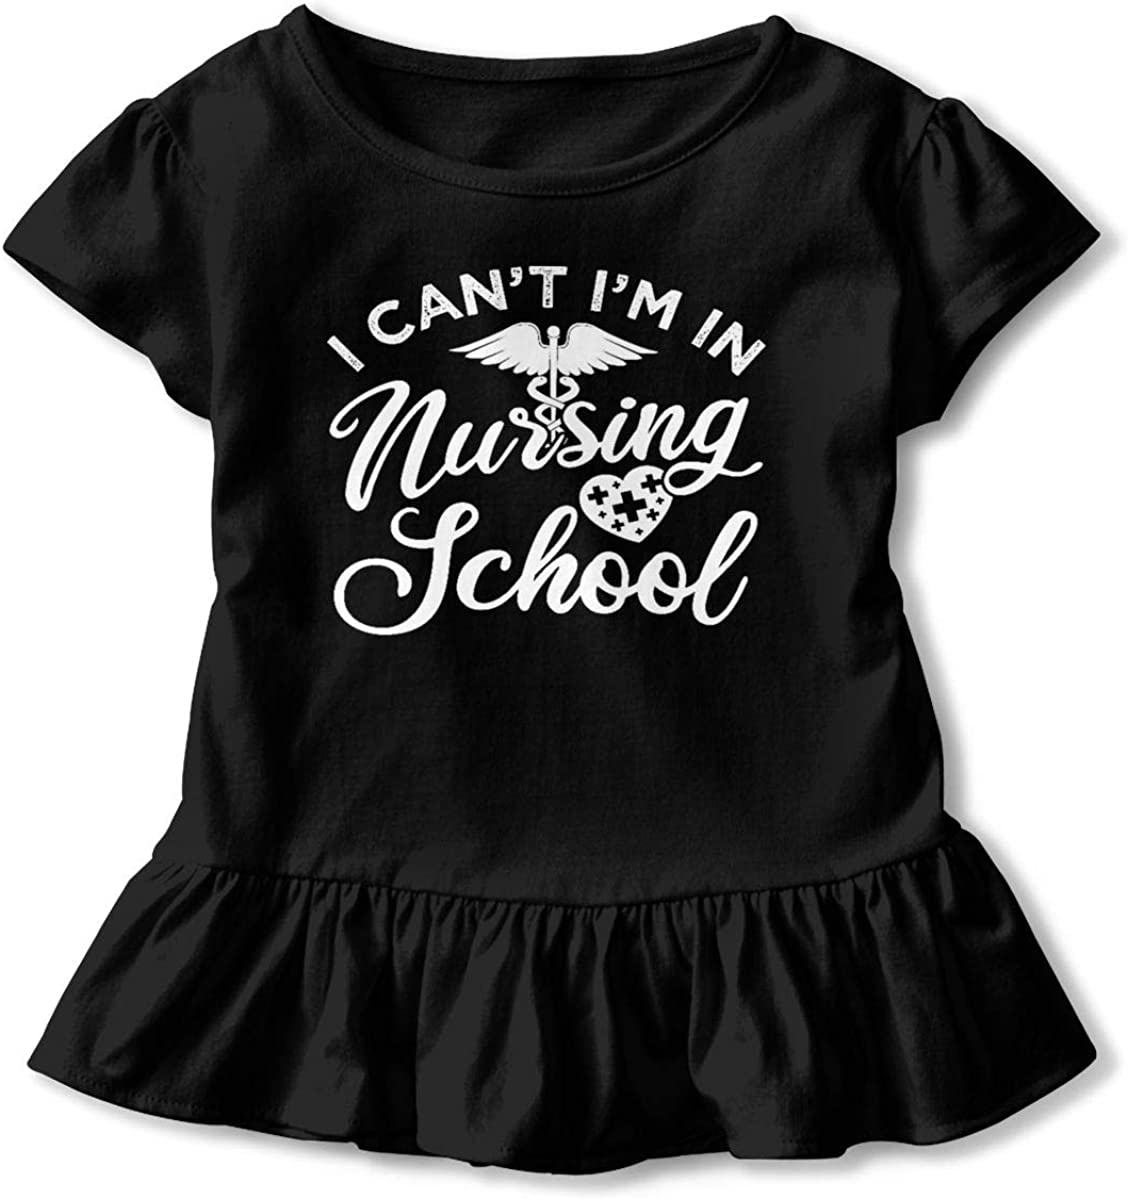 I Cant Im in Nursing School Shirt Baby Girls Flounced Short Sleeve Shirt Dress for 2-6 Years Old Baby Black